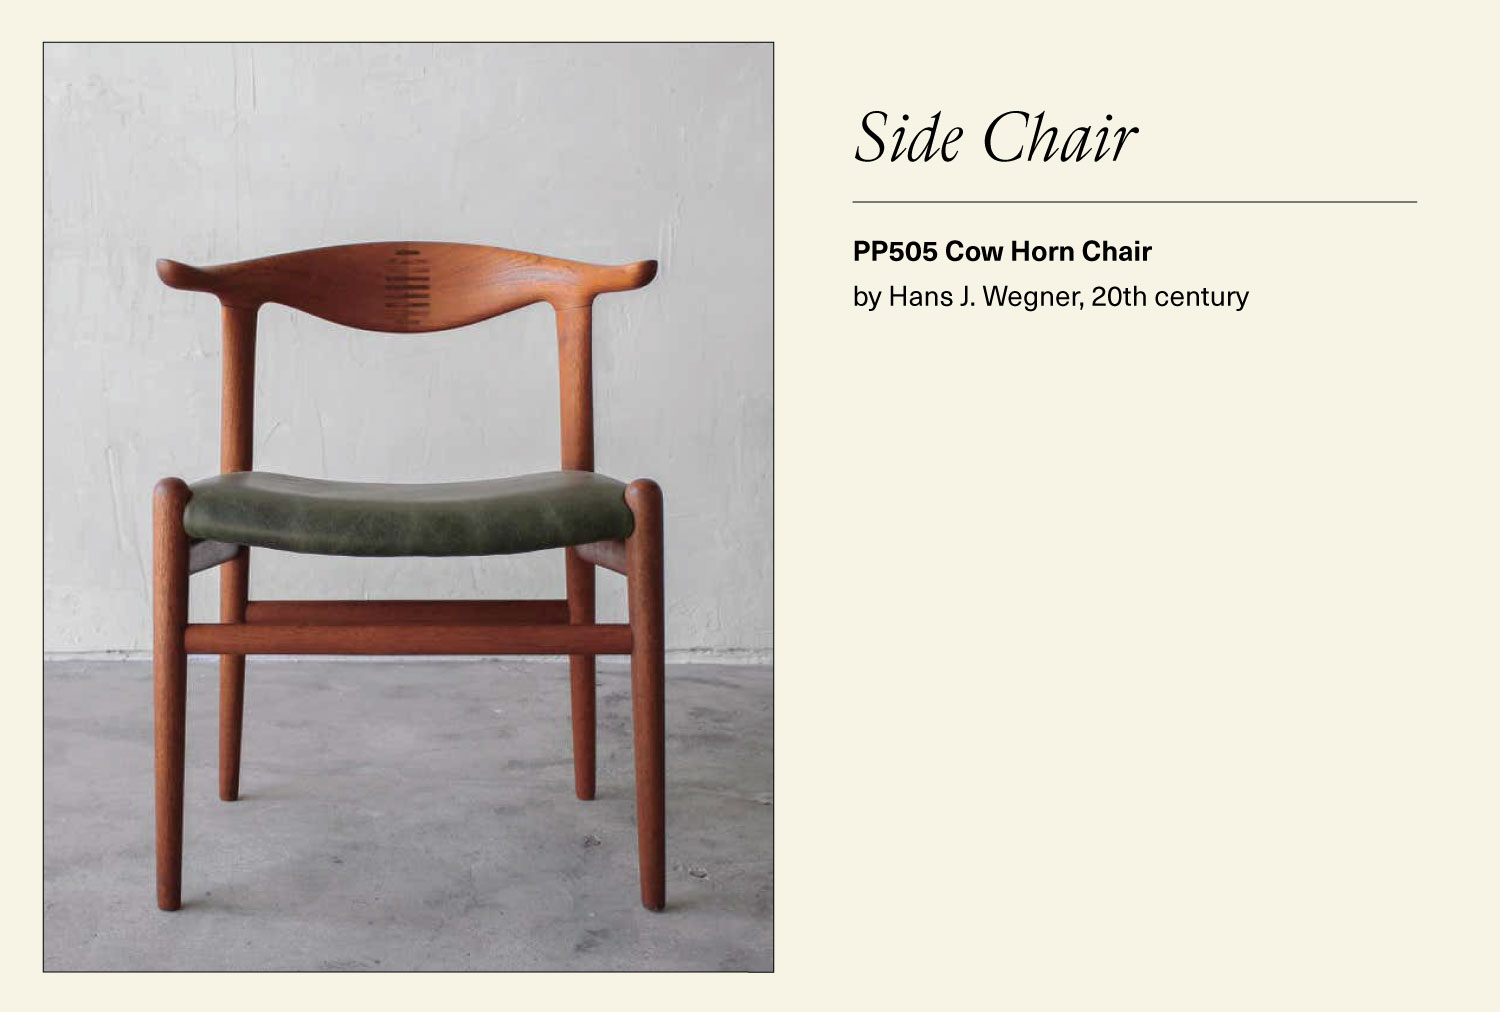 PP505 cow horn side chair